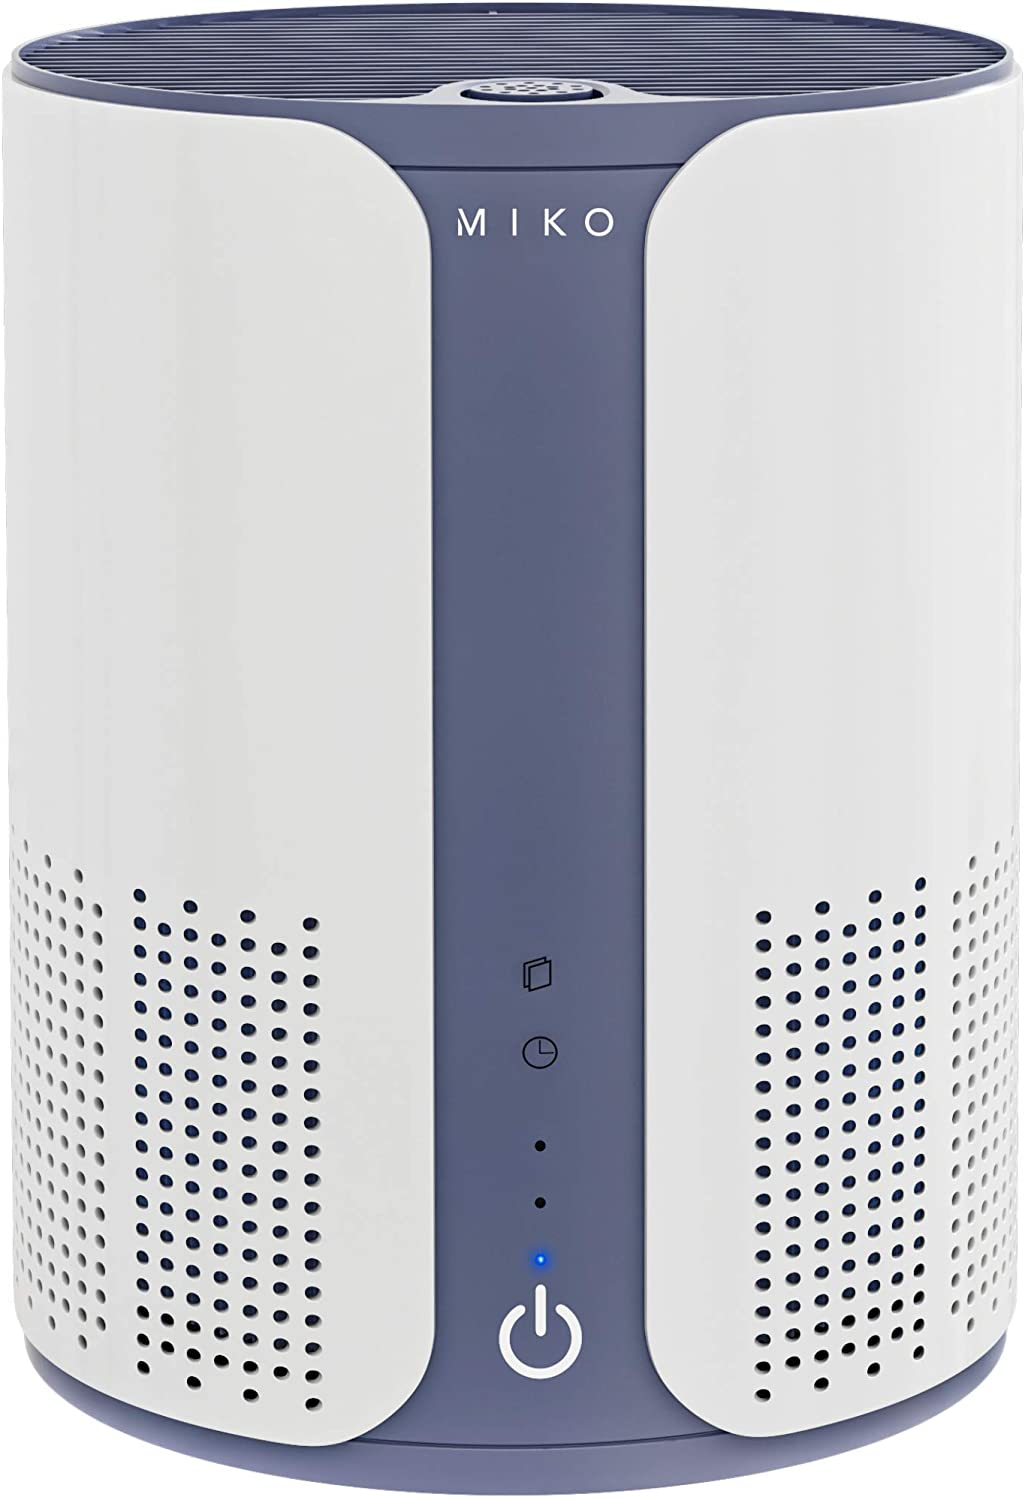 Miko Air Purifier for Home Air Filtration Efficiency, Multiple Speeds, Quiet, H11 True HEPA Filter Removes 99.97% of Hair, Fur, Dust, Bacteria, Viruses, Mold, Pollen, Allergens, Odor, 400 Sqft